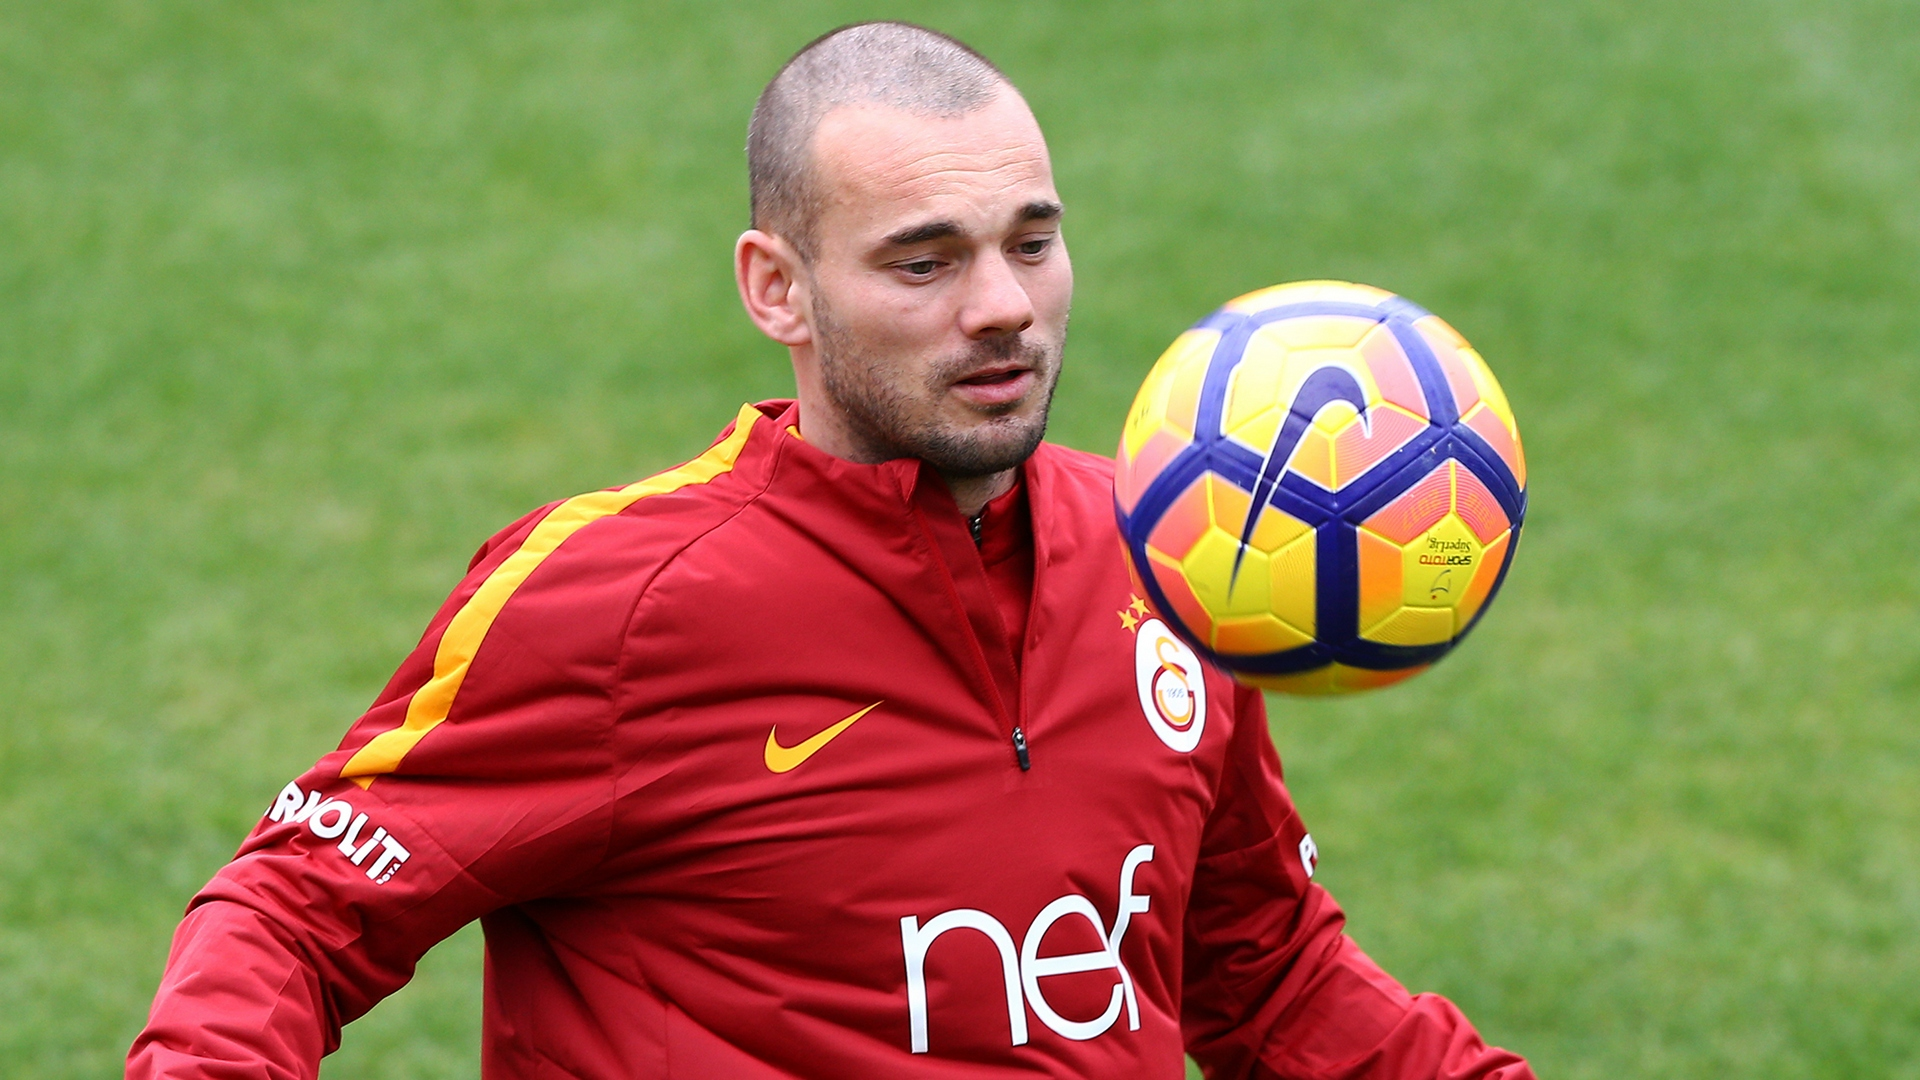 http://images.performgroup.com/di/library/Goal_Turkey/7d/84/wesley-sneijder-galatasaray_1sn17yppocttk1xulztz2vq0nh.jpg?t=-1883017398